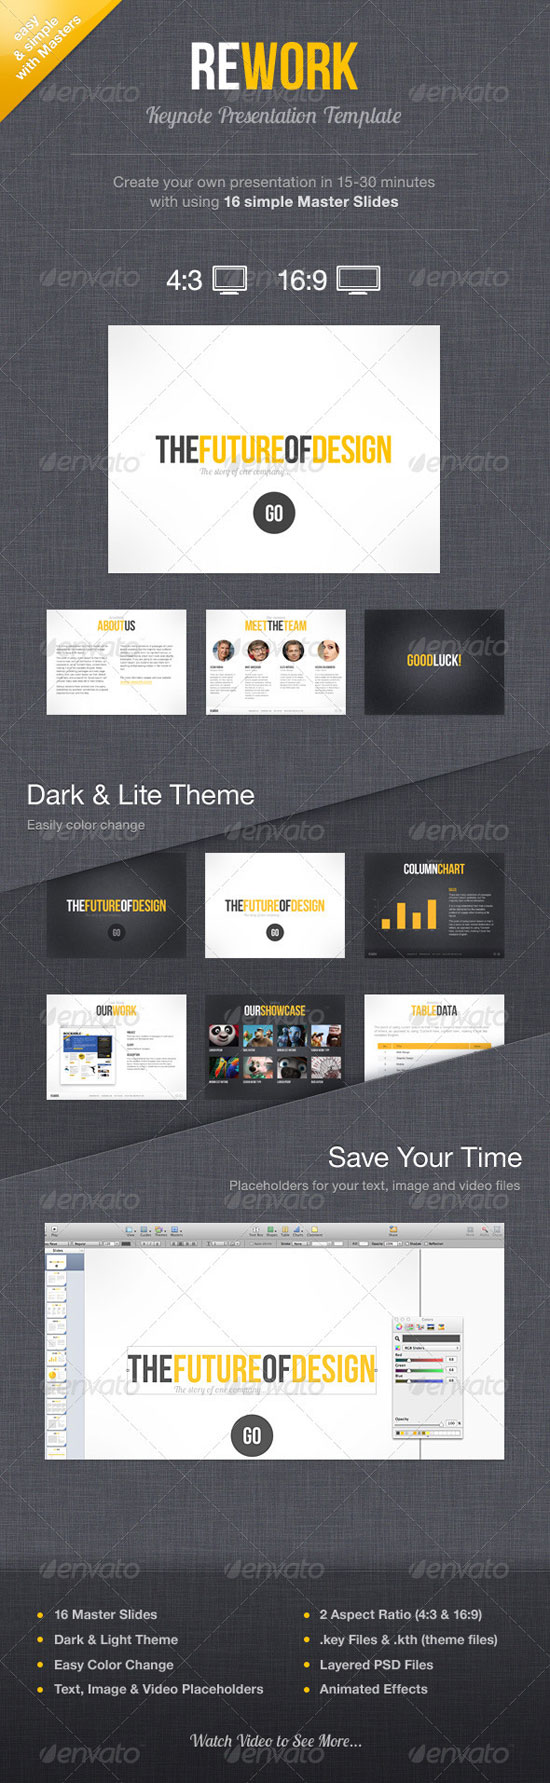 best keynote template